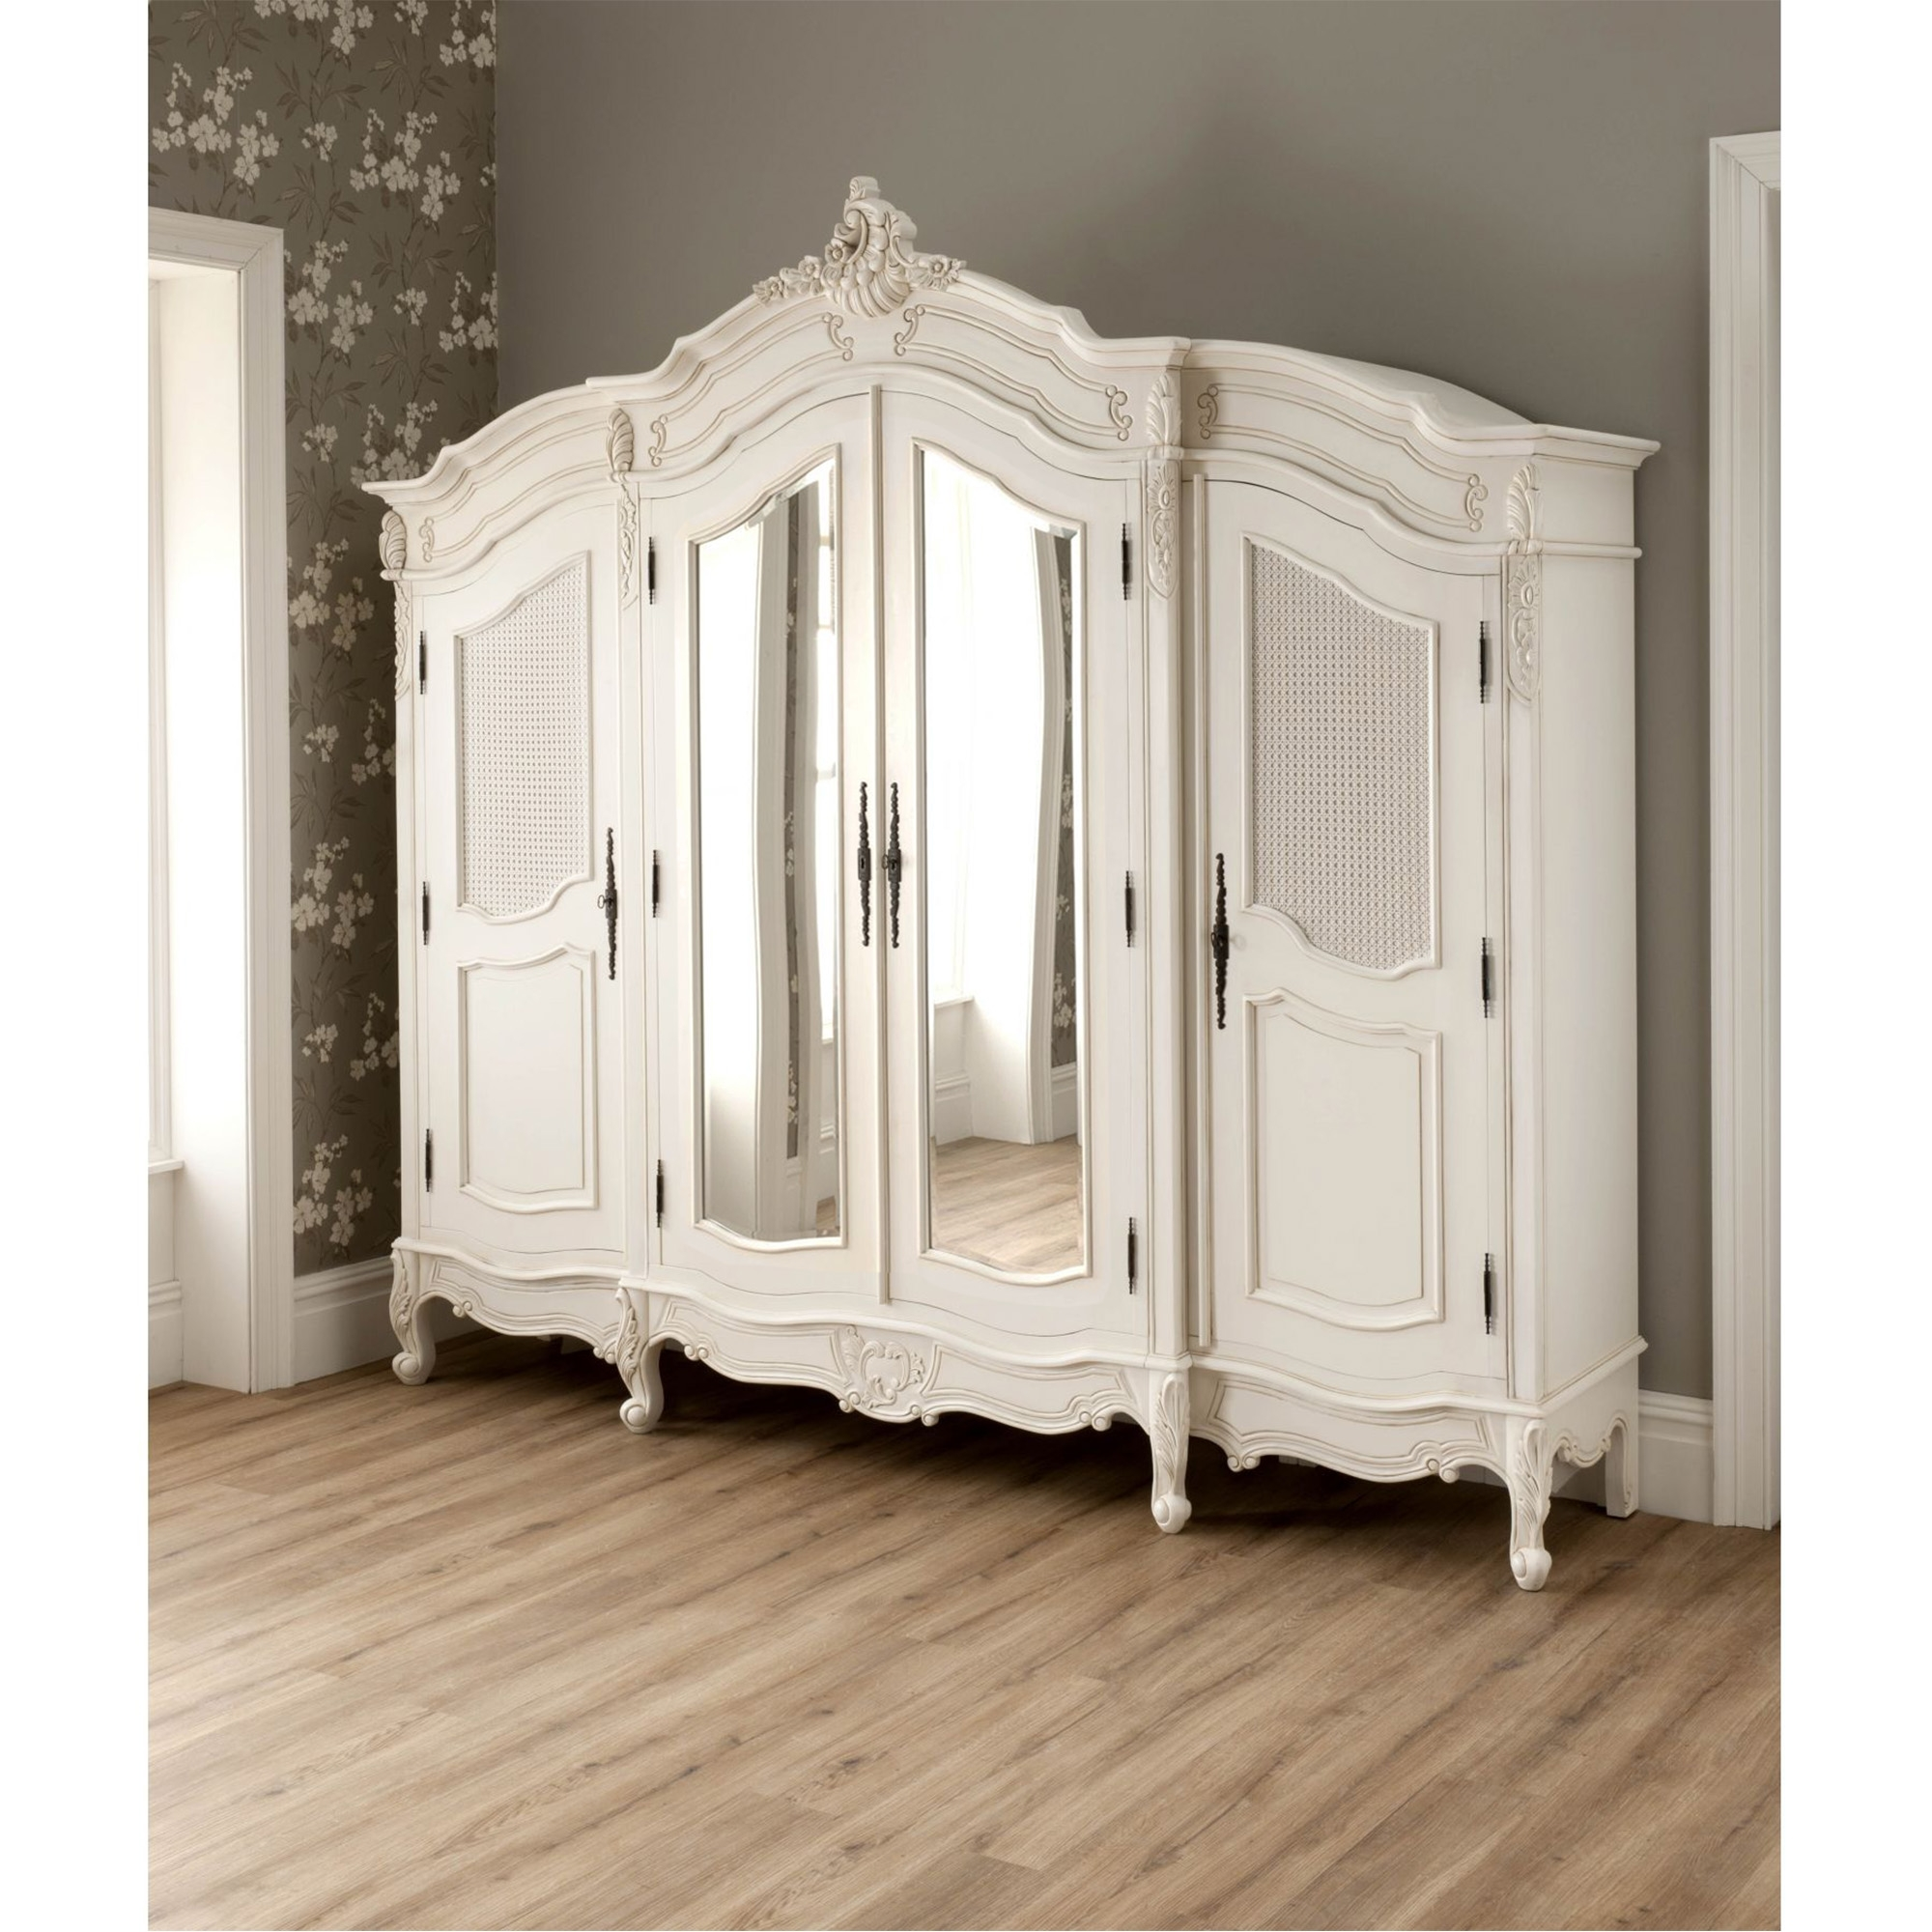 Antique French Wardrobe Is A Fantastic Addition To Our